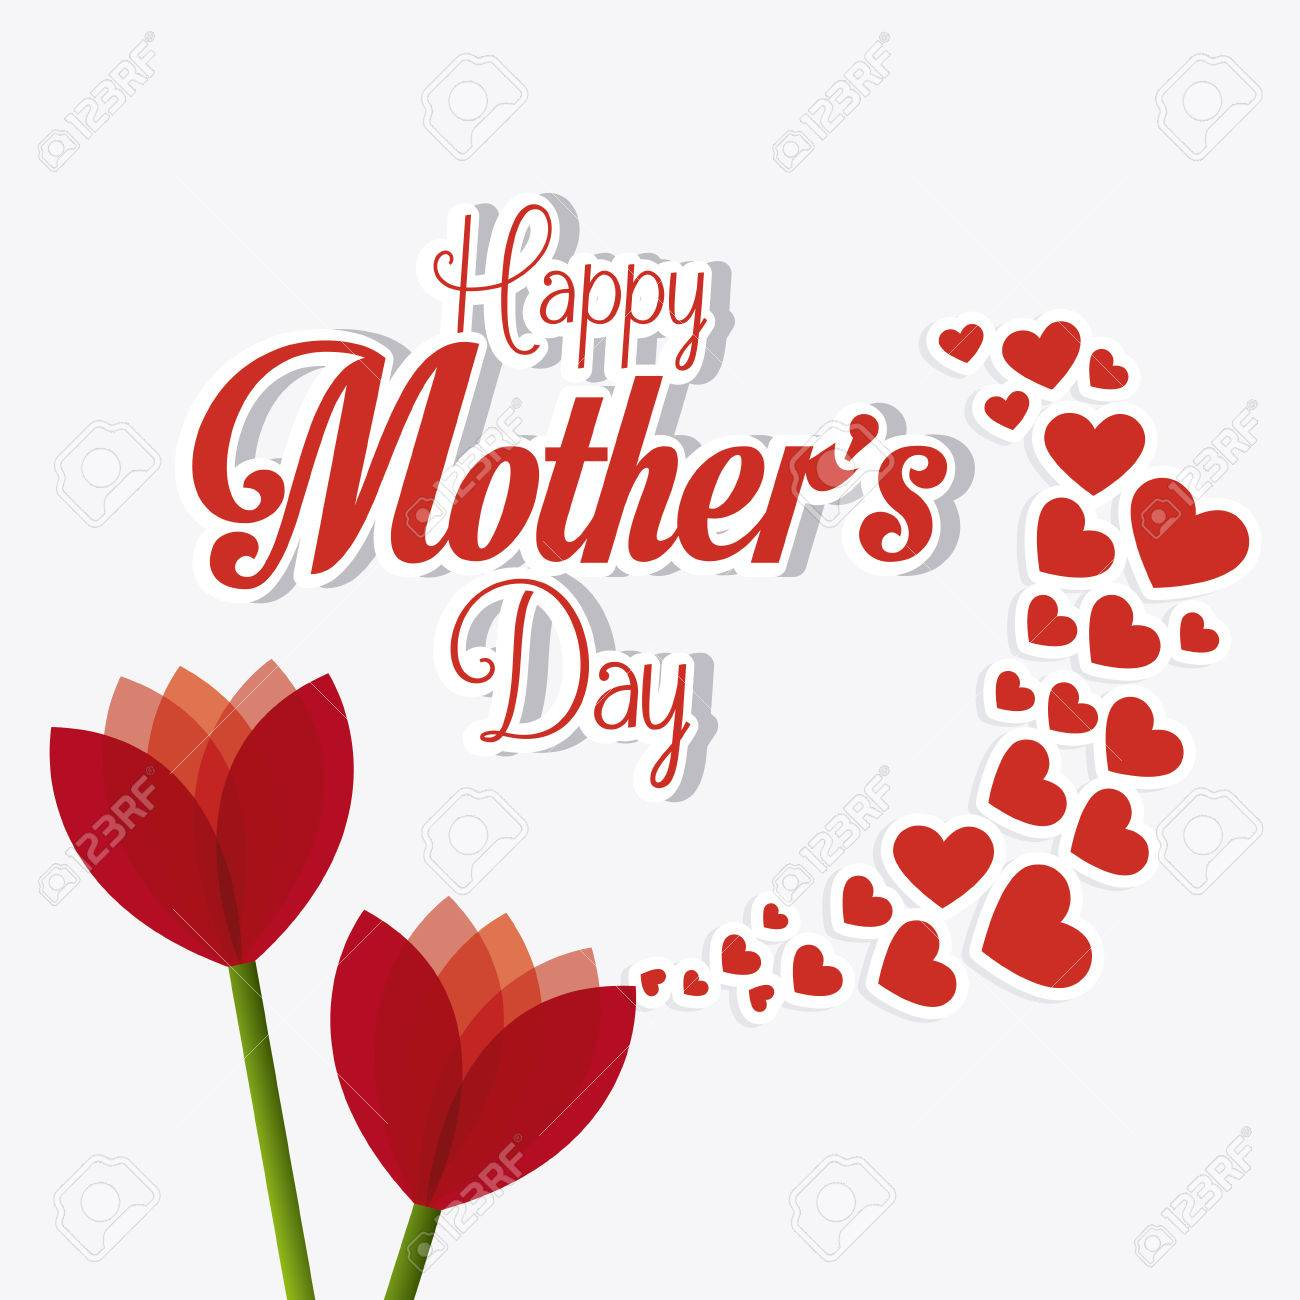 mothers day card designs